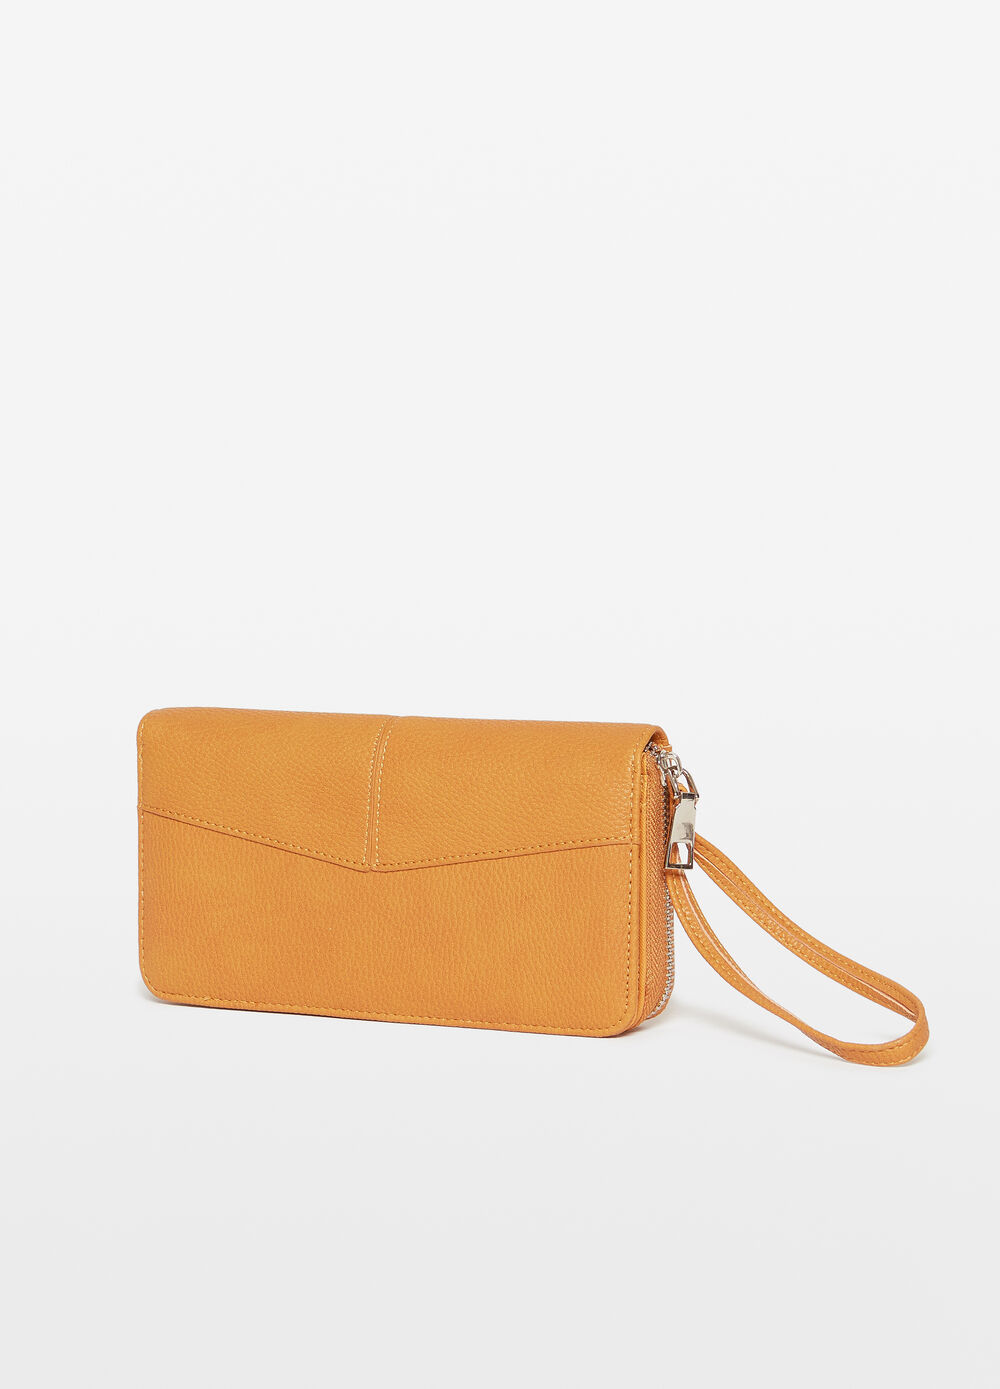 Purse with two compartments